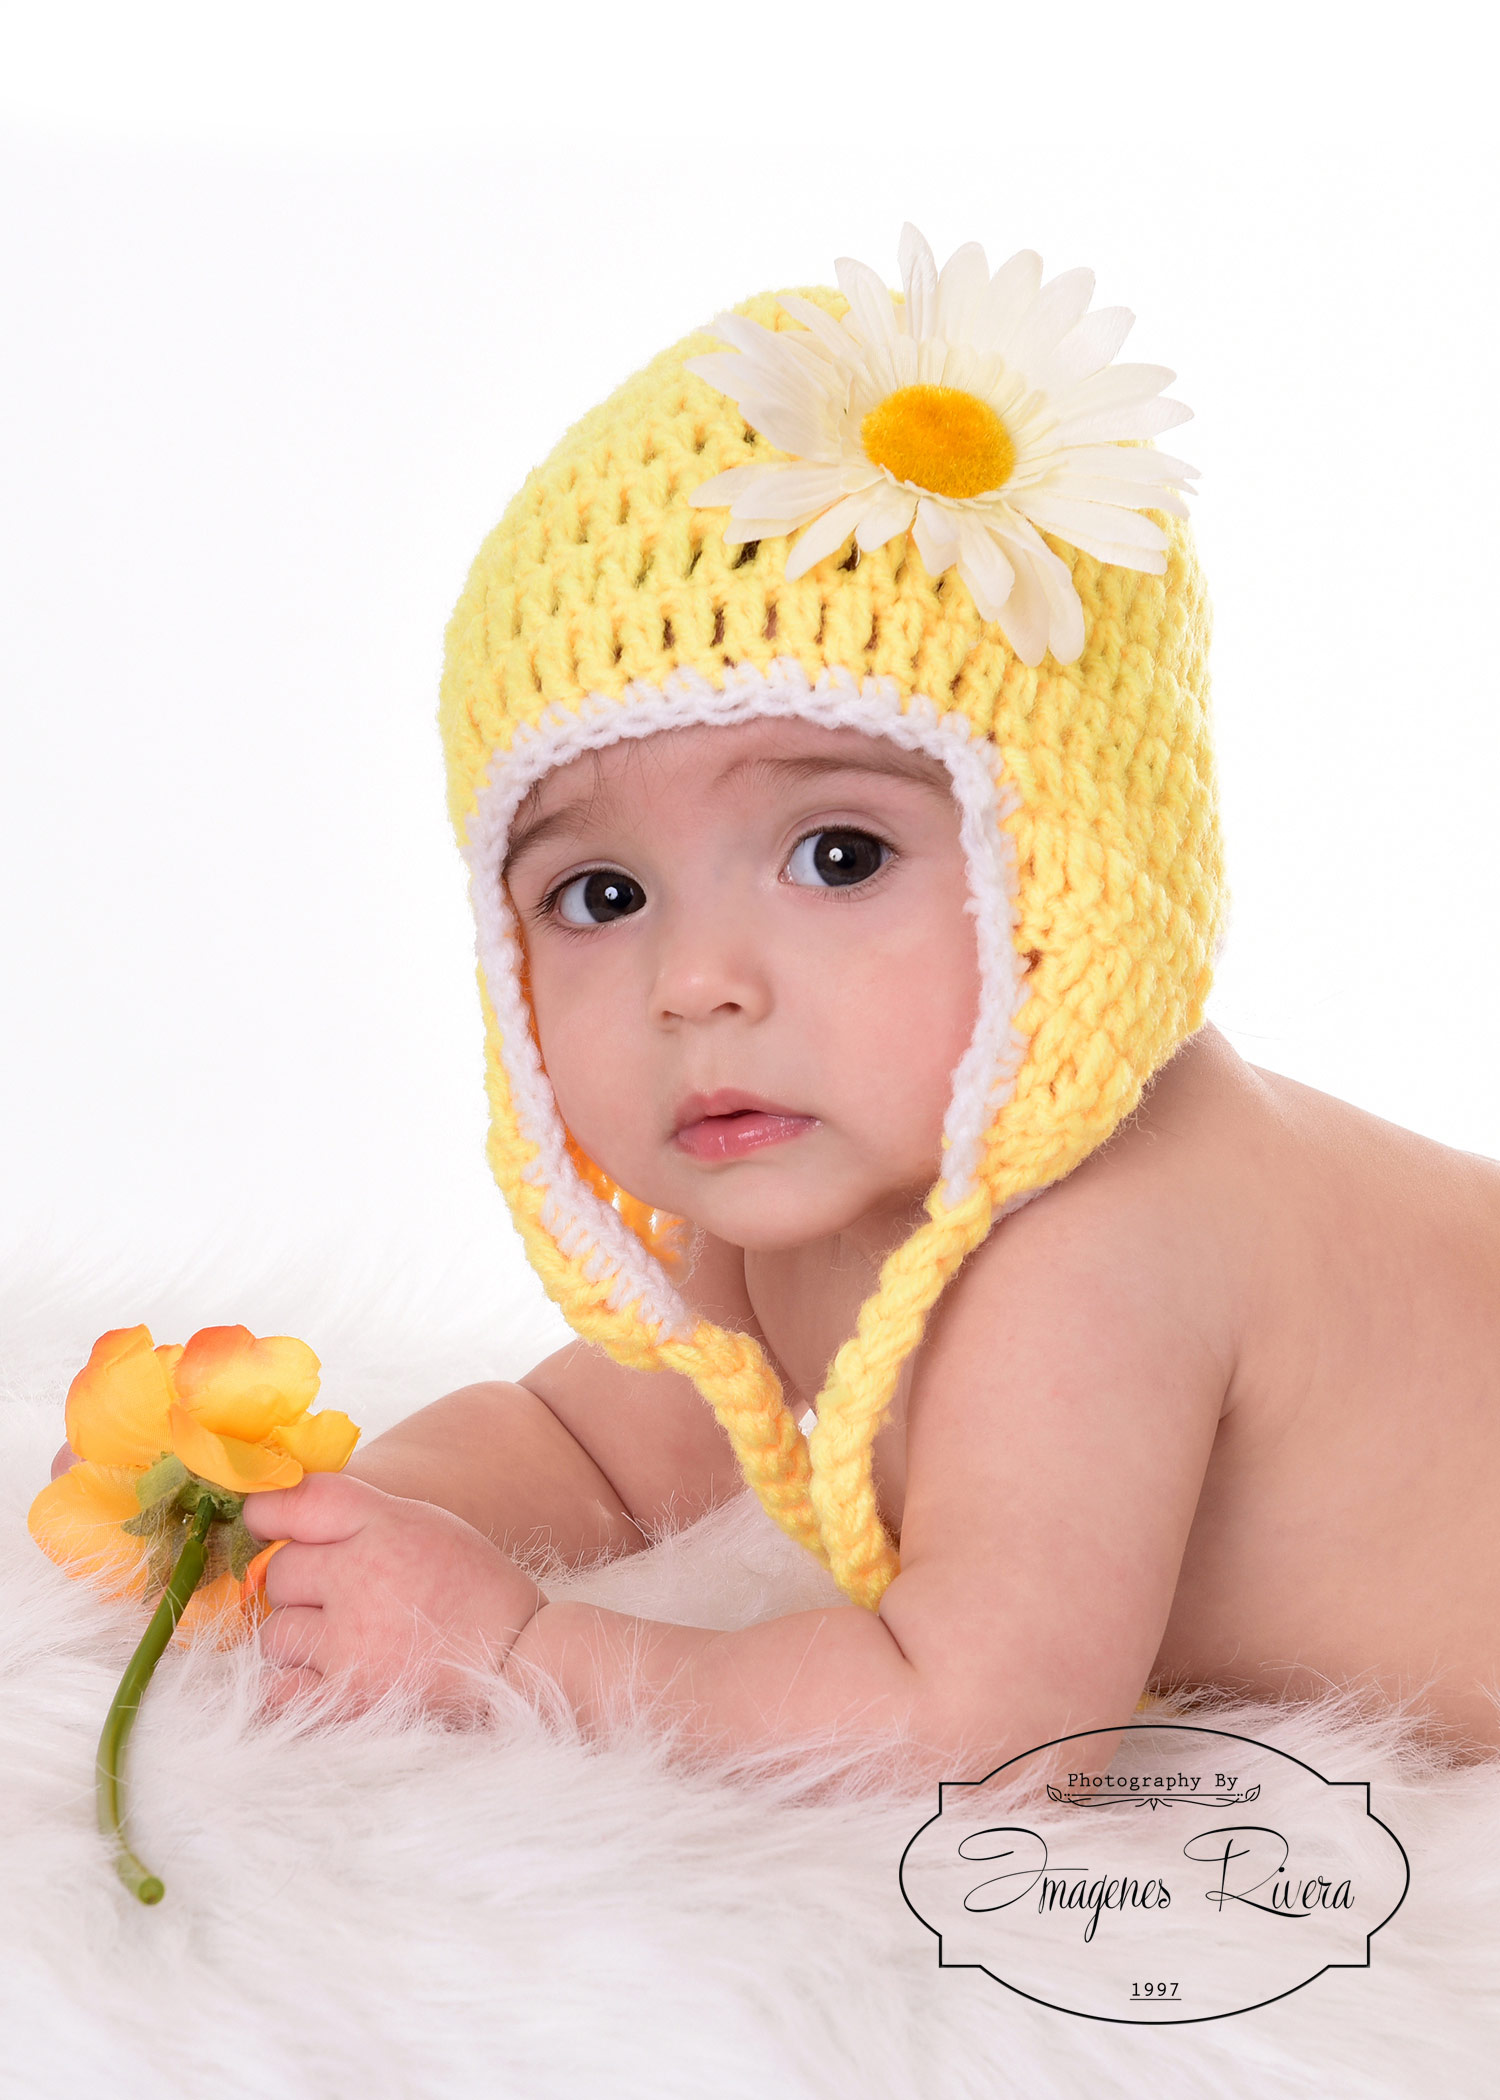 ♥ Cecilia easter mini session in Kendall|Miami baby photographer Imagenes Rivera ♥